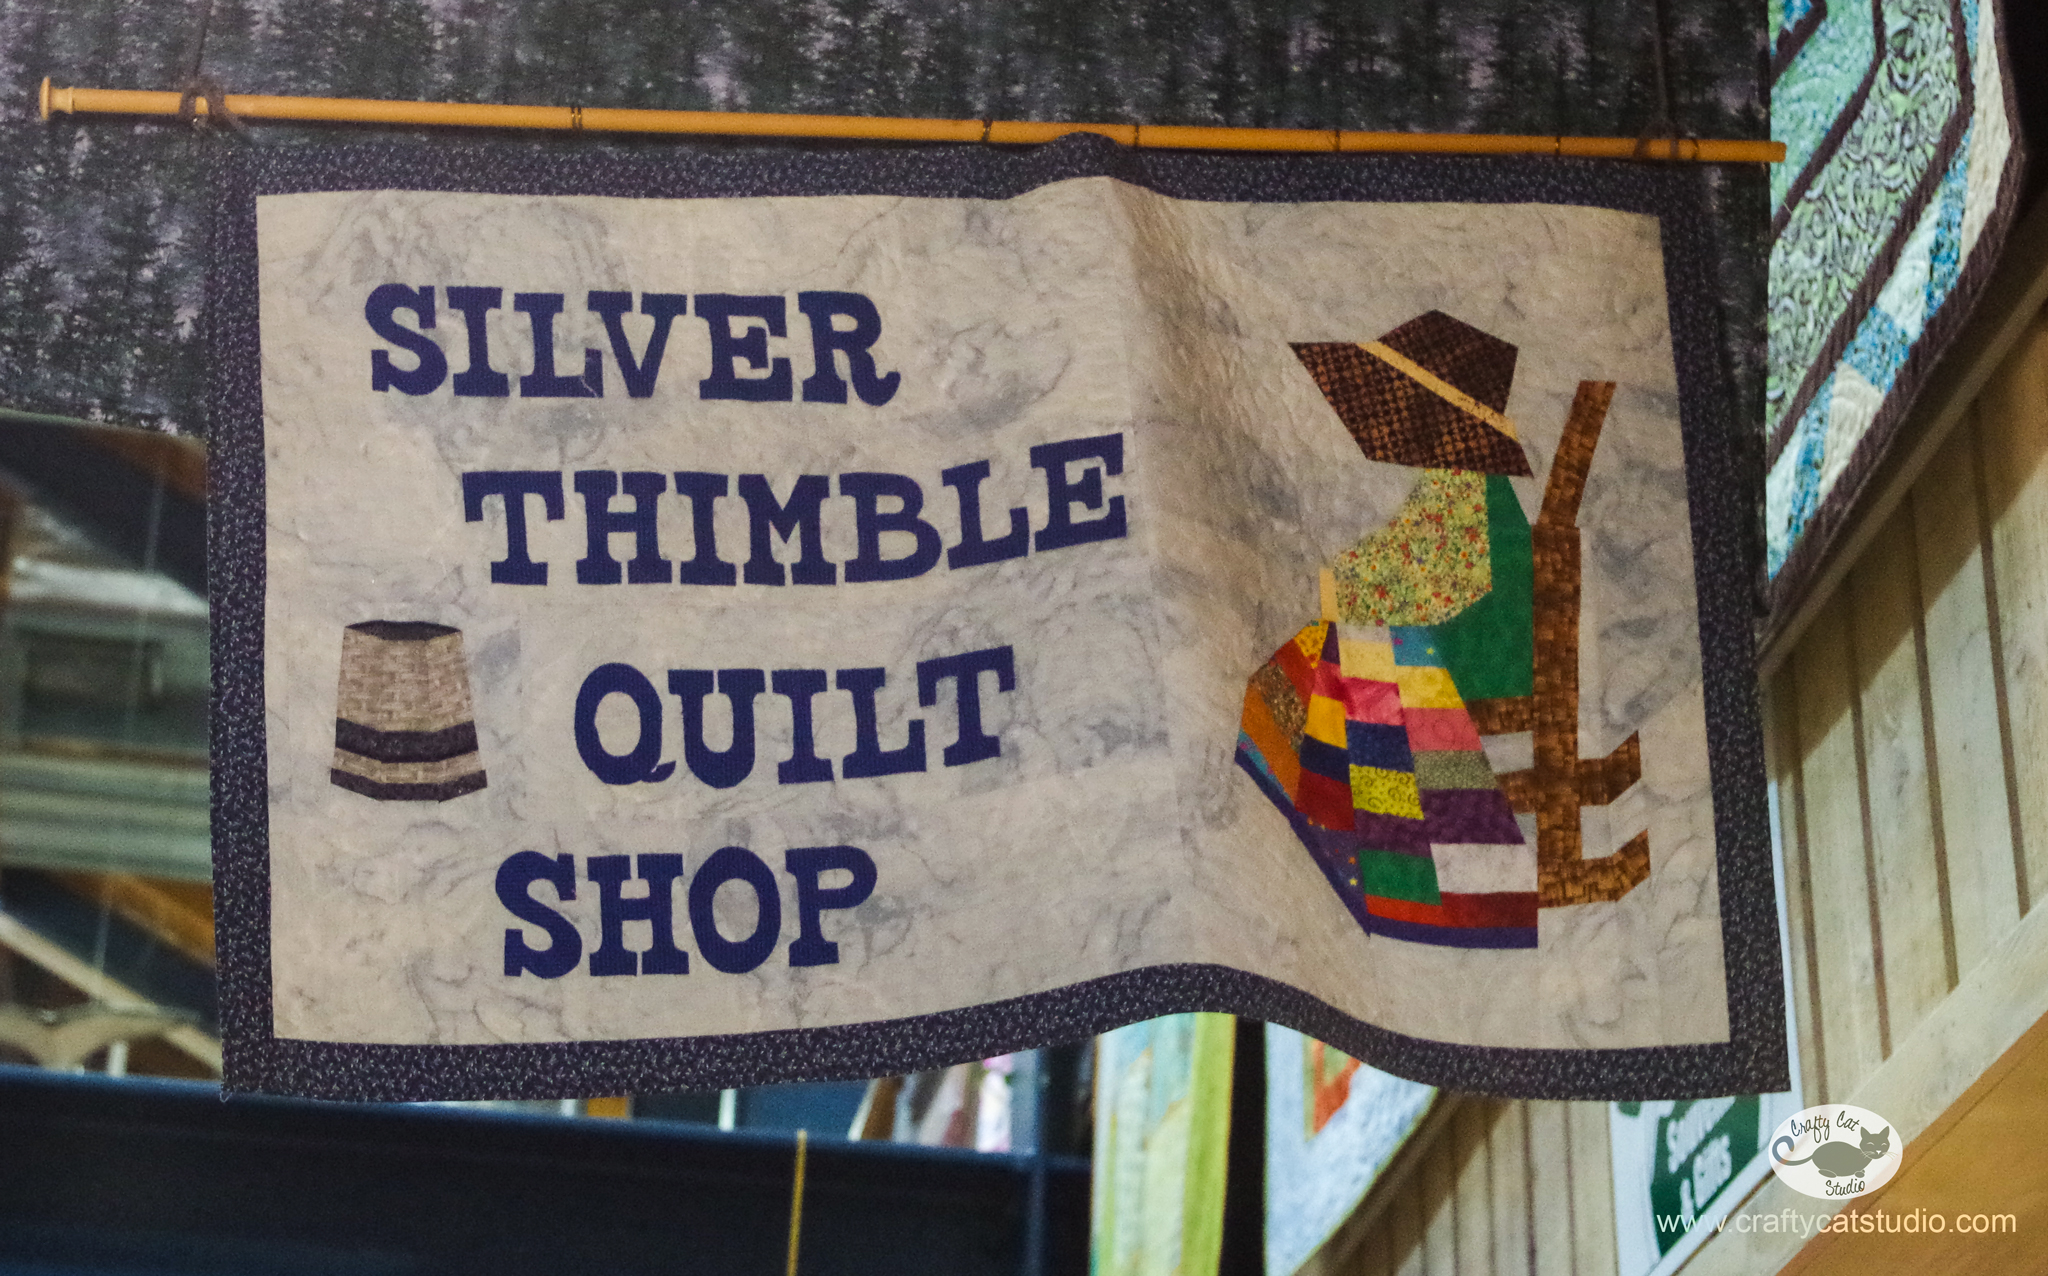 The Silver Thimble